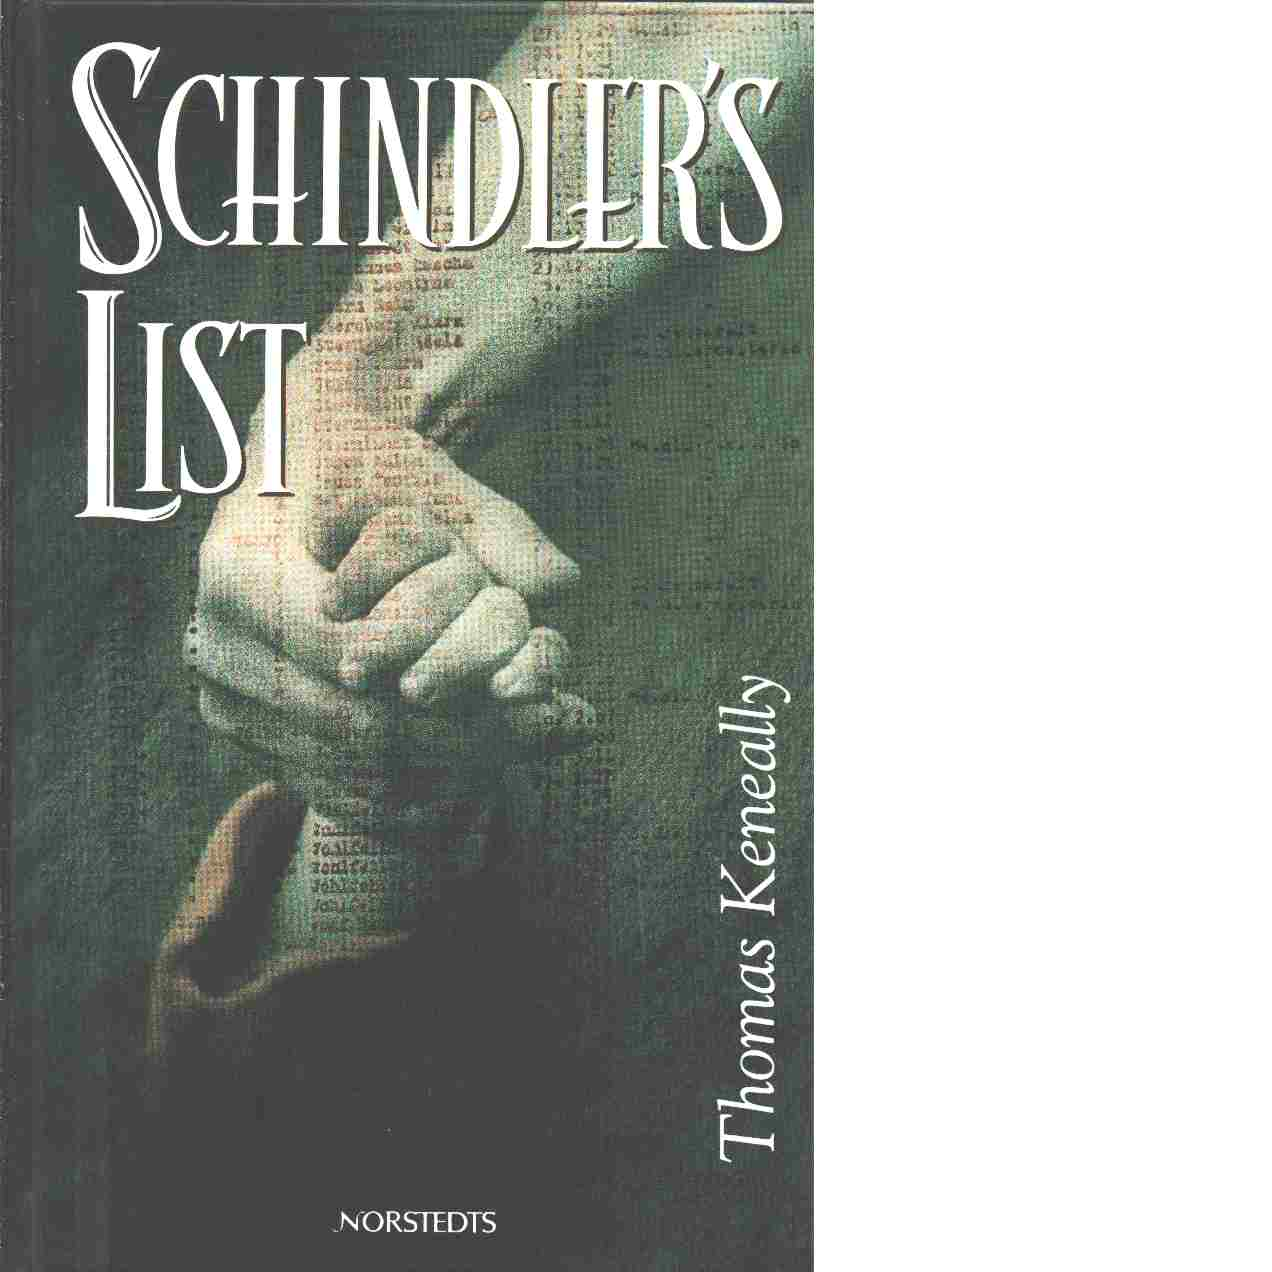 Schindler's list - Keneally, Thomas